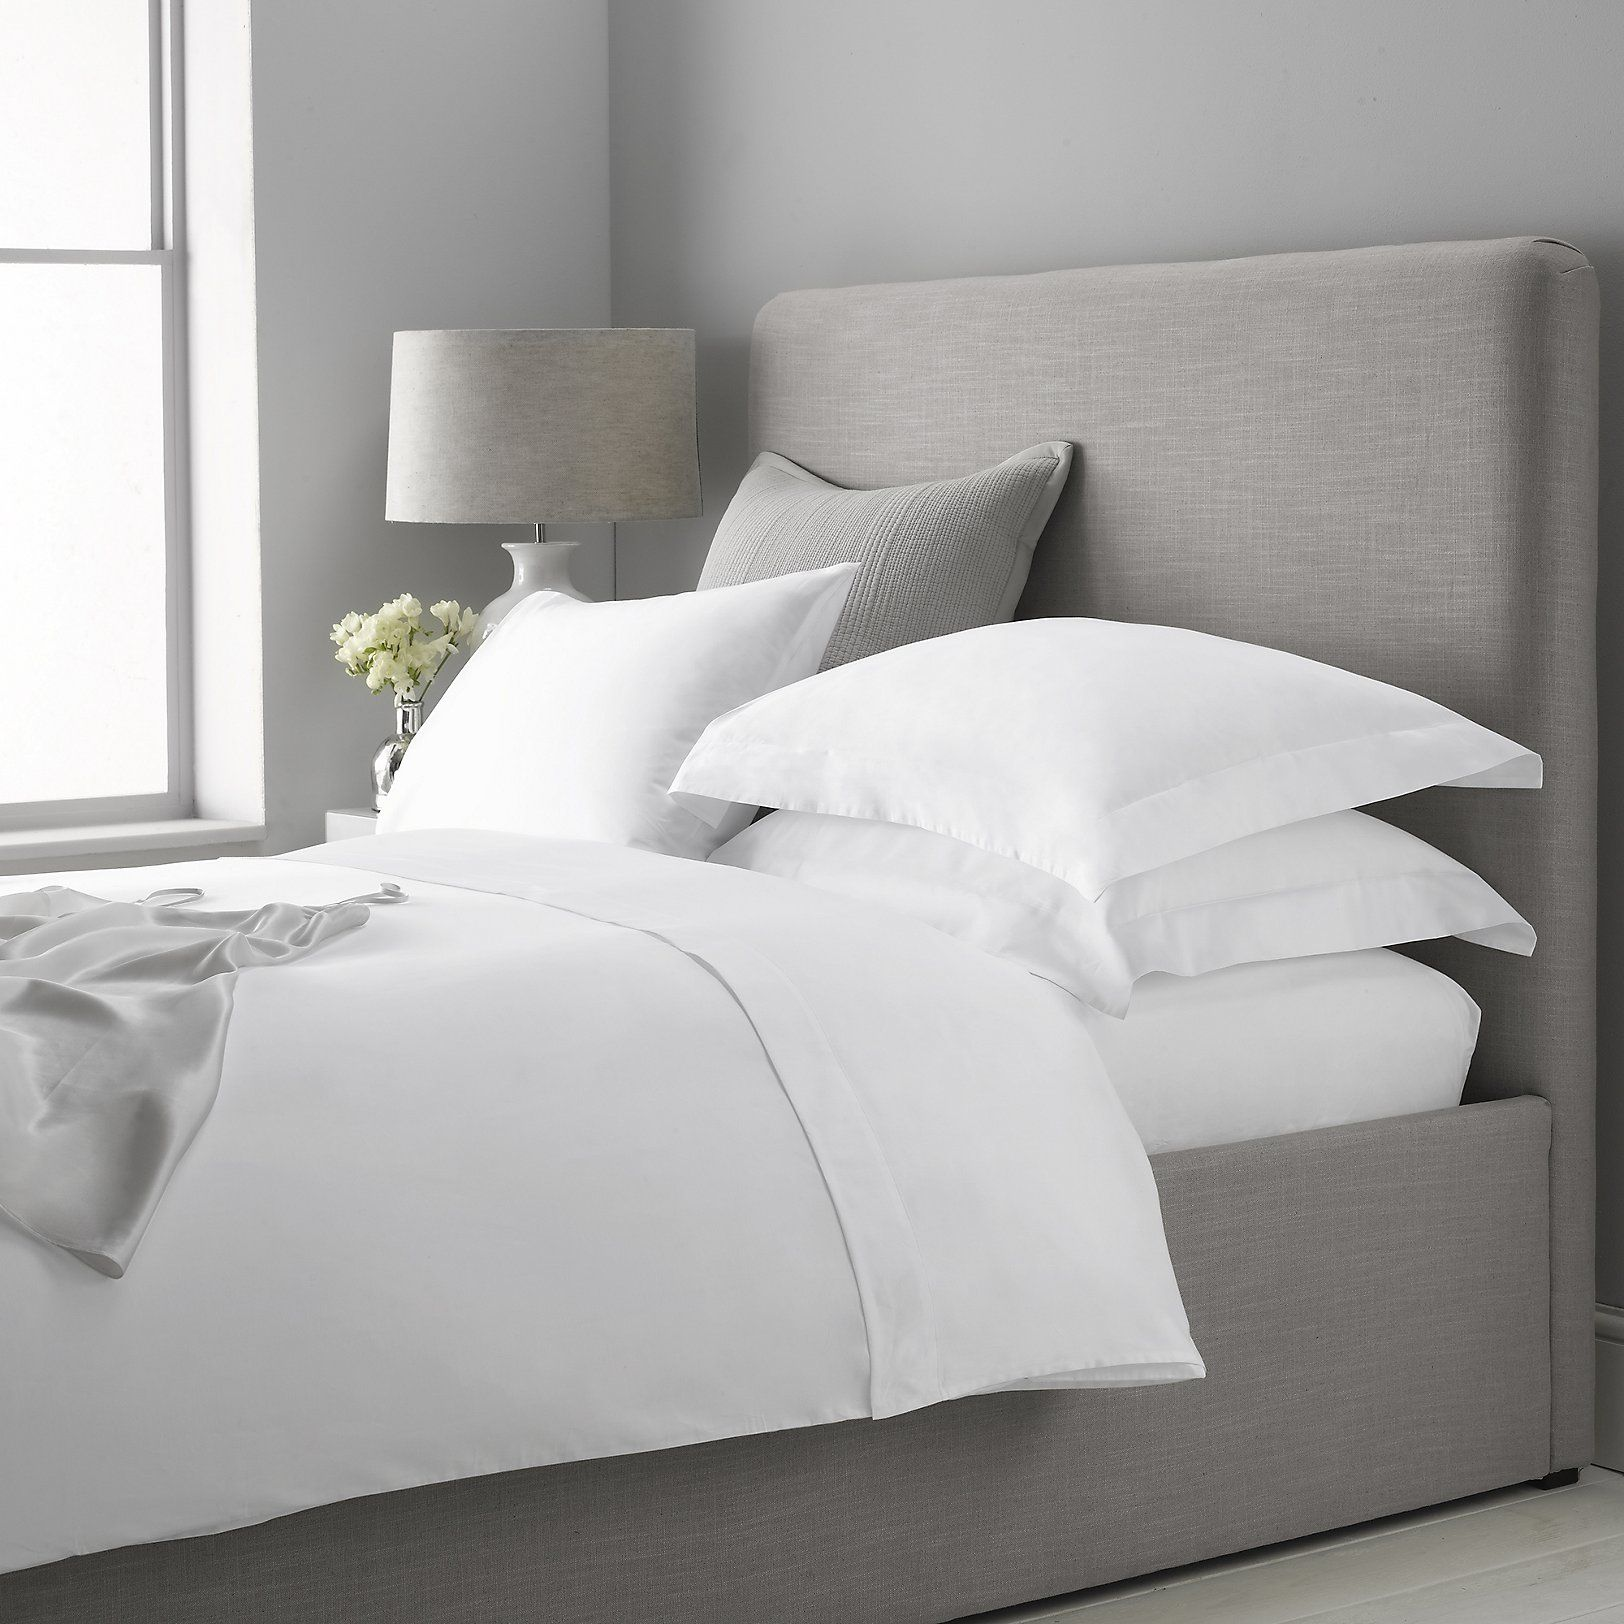 300 Thread Count Egyptian Cotton Sateen Bed Linen Collection | Bed Linen |  The White Company